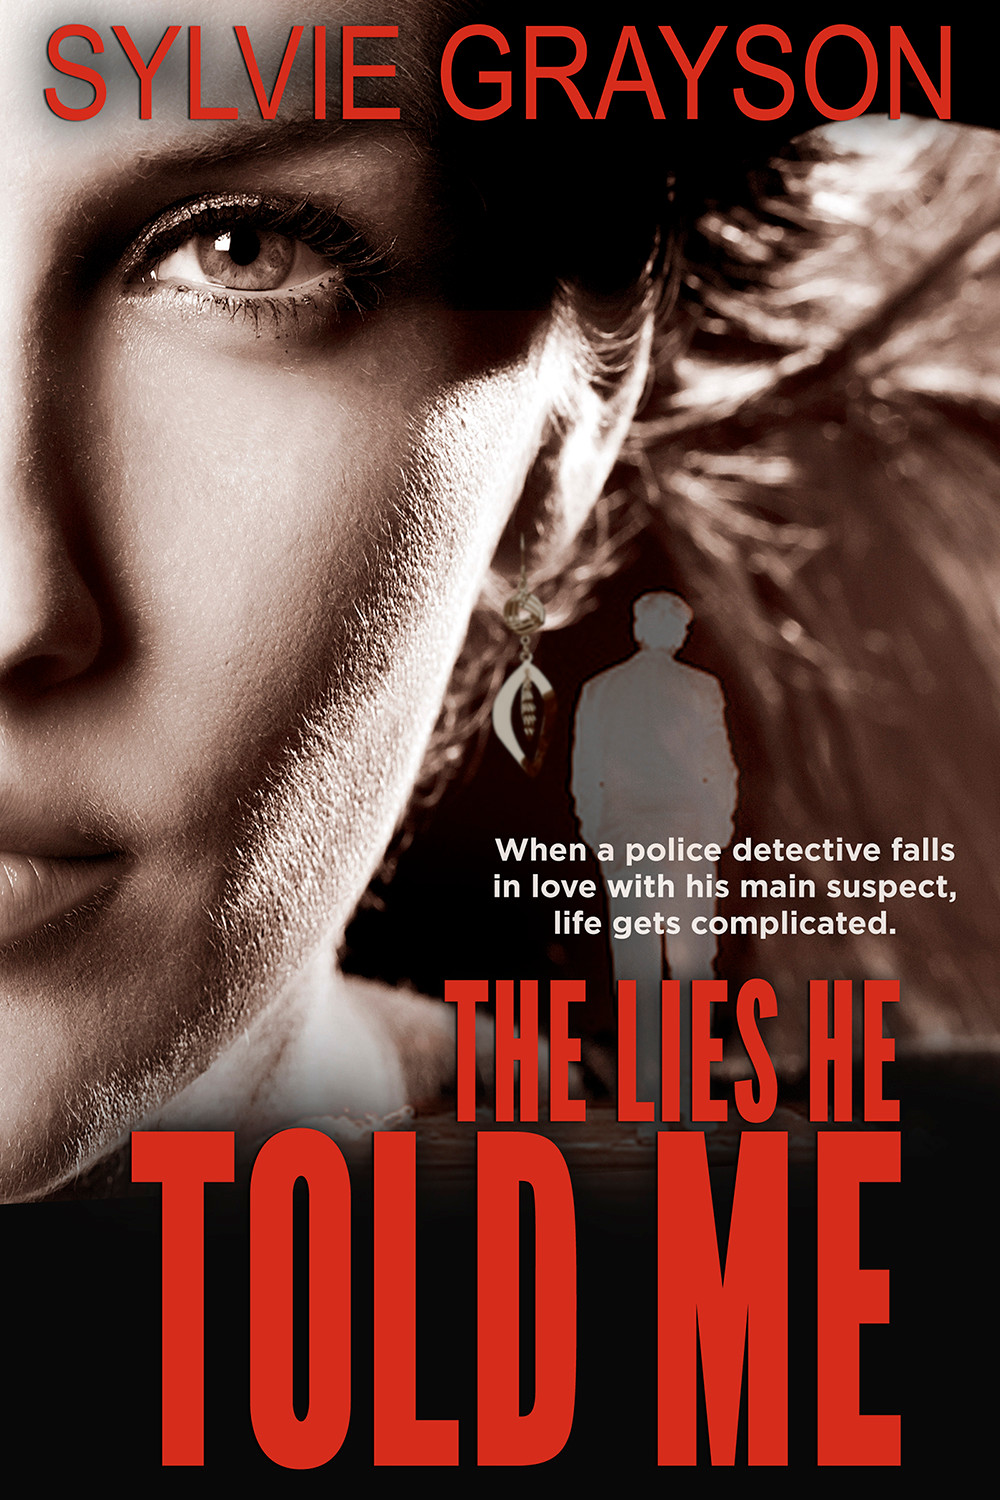 THE LIES HE TOLD ME by Sylvie Grayson